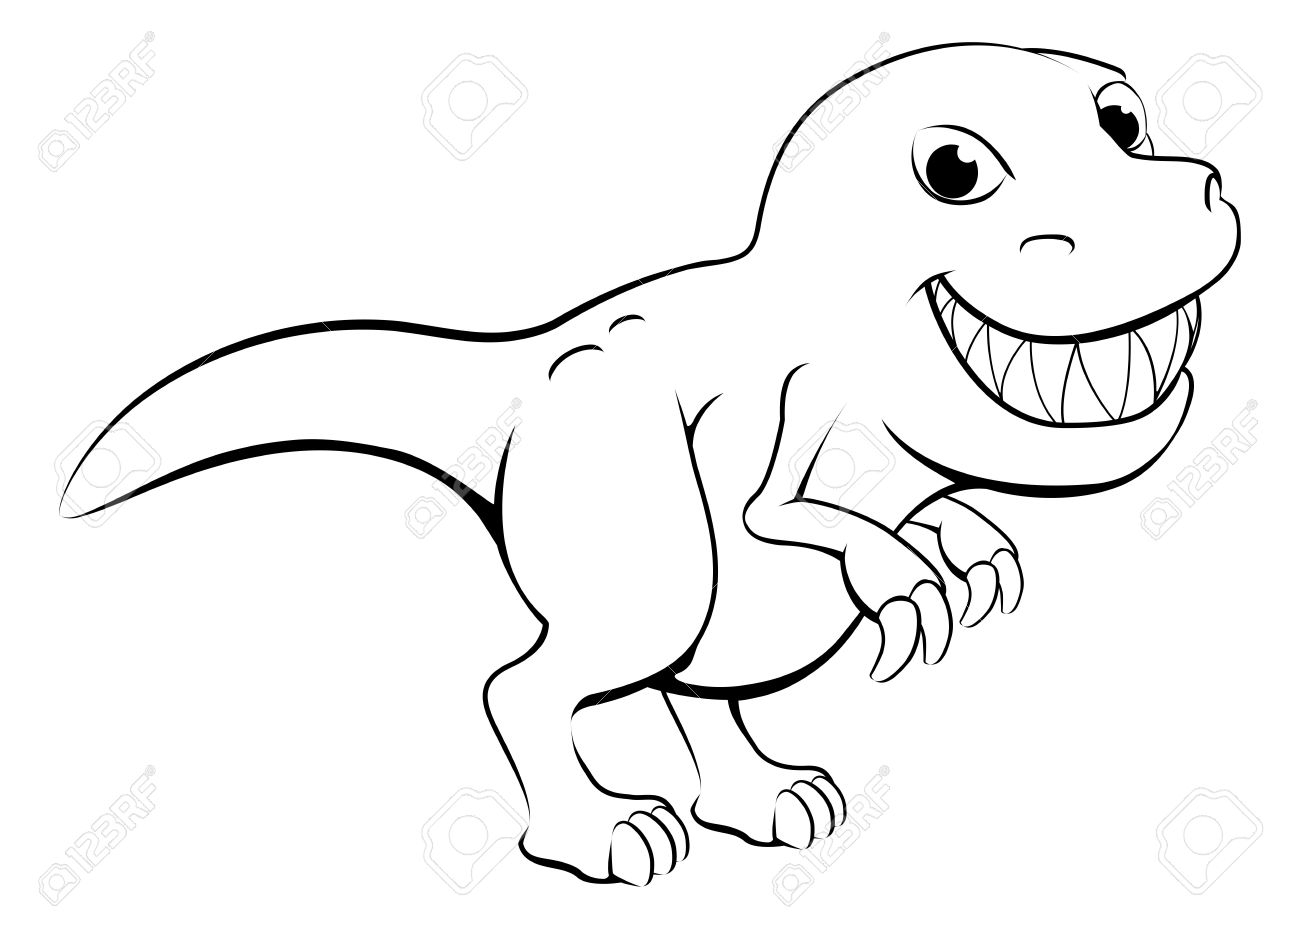 1300x929 T Rex Cartoon Drawing Black And White Illustration Of A Happy